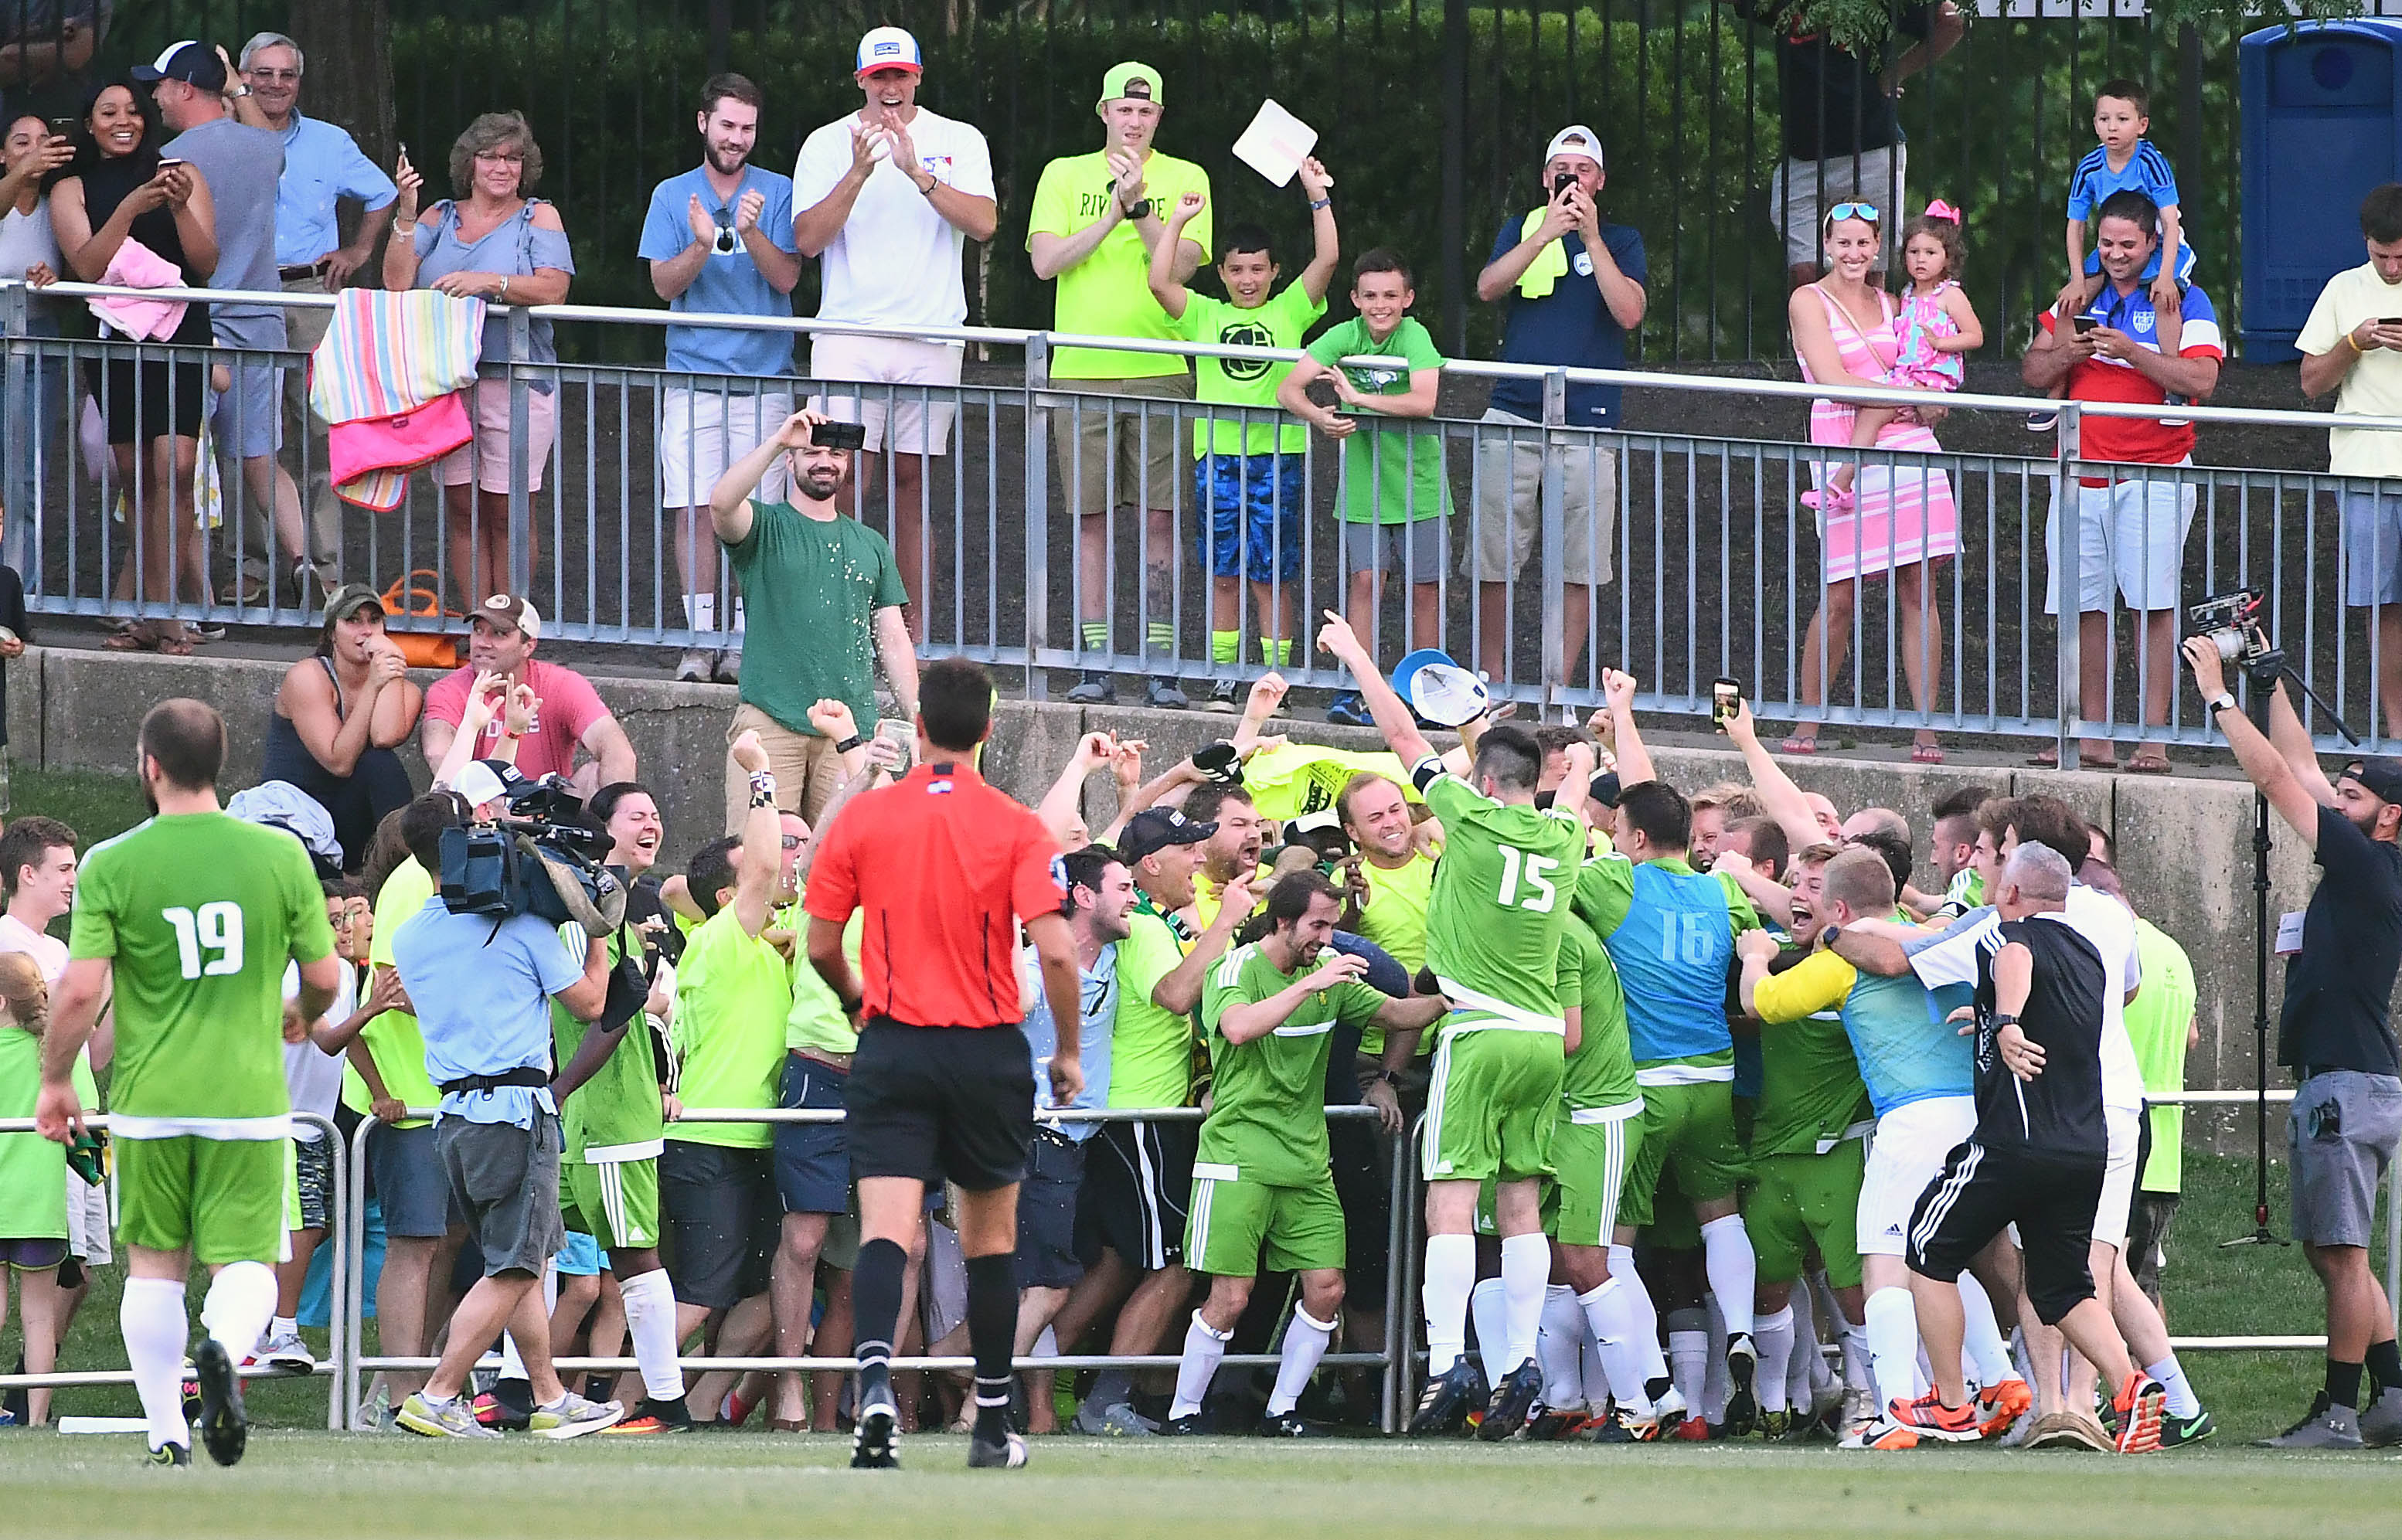 Top 5 Moments from the US Open Cup Fourth Round